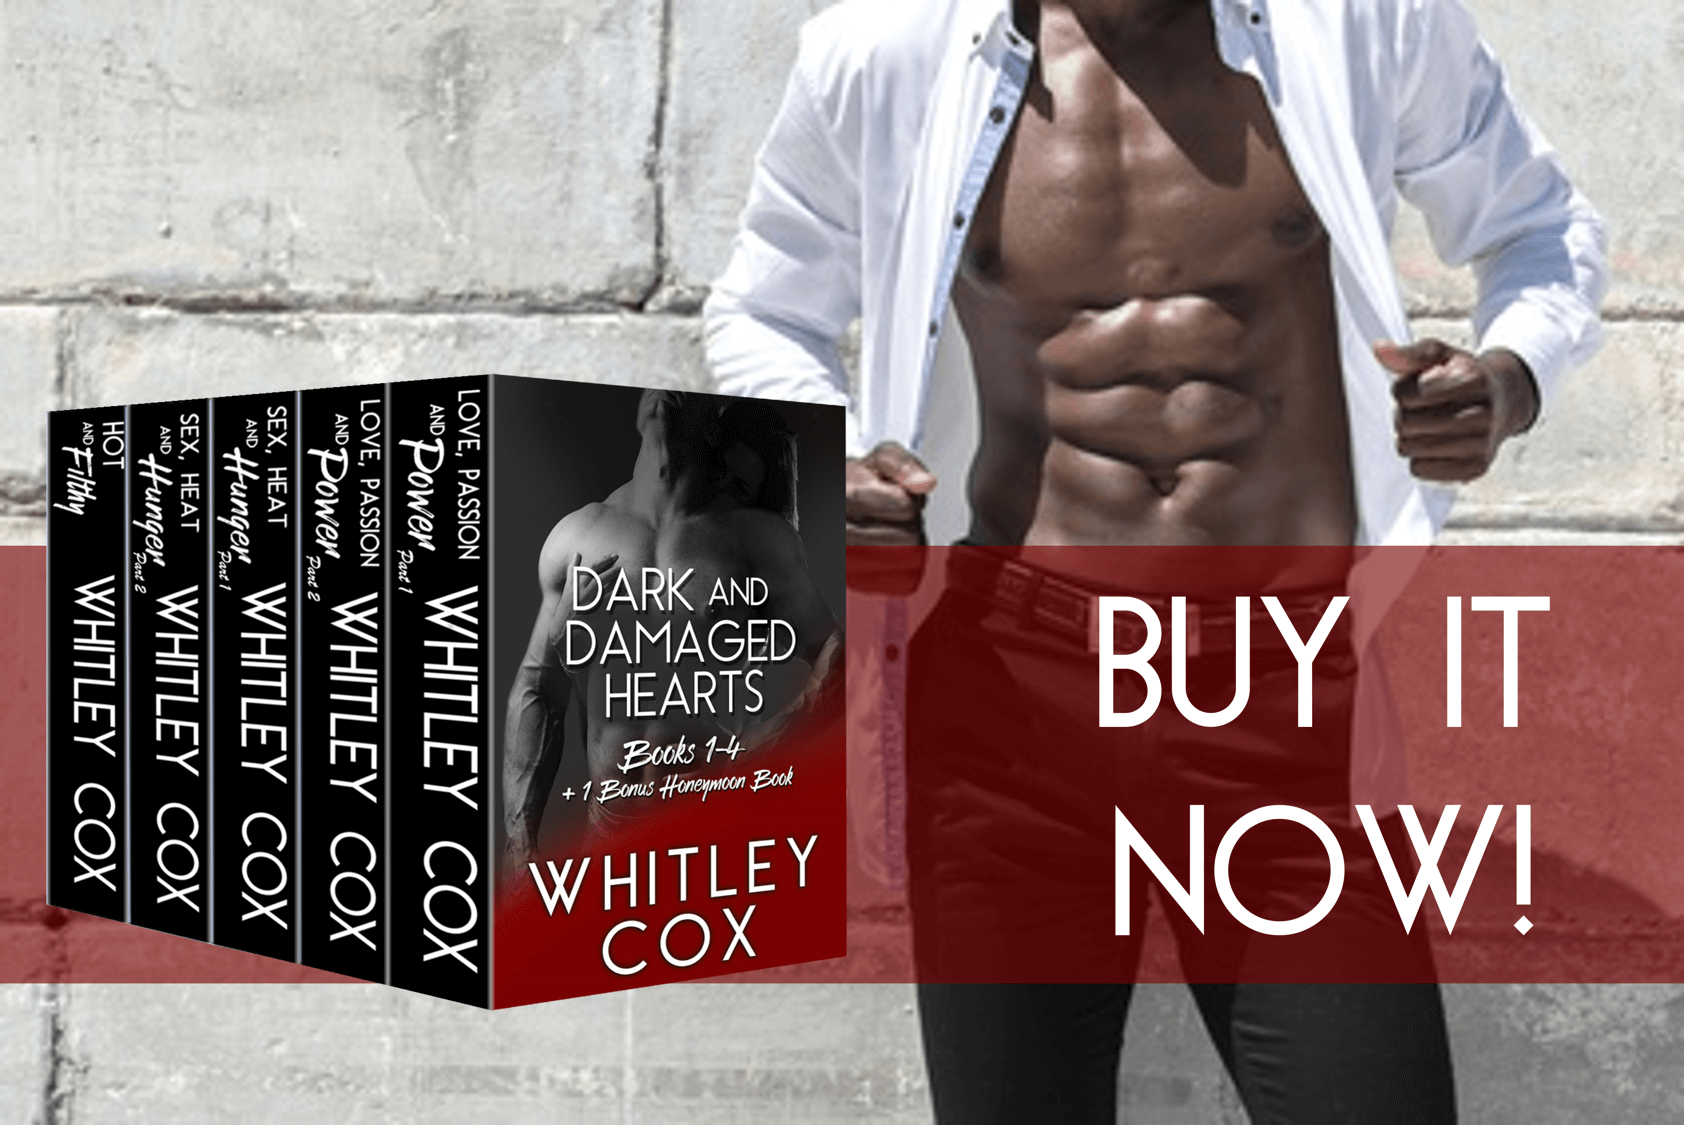 Whitley Cox's Dark and Damaged Hearts Boxed Set